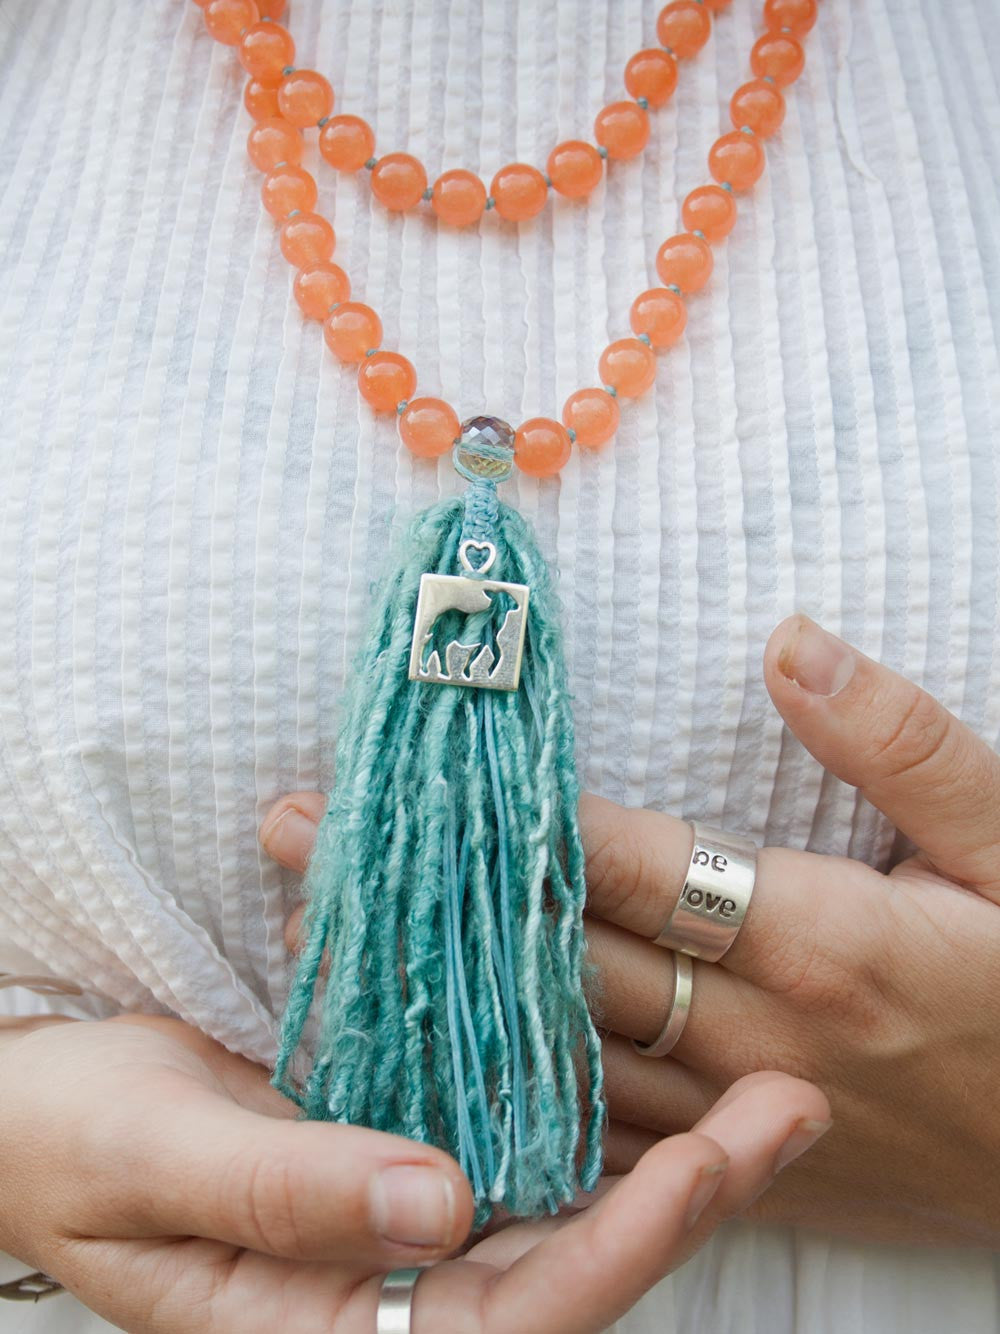 Our sweet and spunky Tribe of Lambs Mala, in 10mm Tuscan peach aventurine with silver Tribe of Lambs pendant and sari silk tassel: hand view.